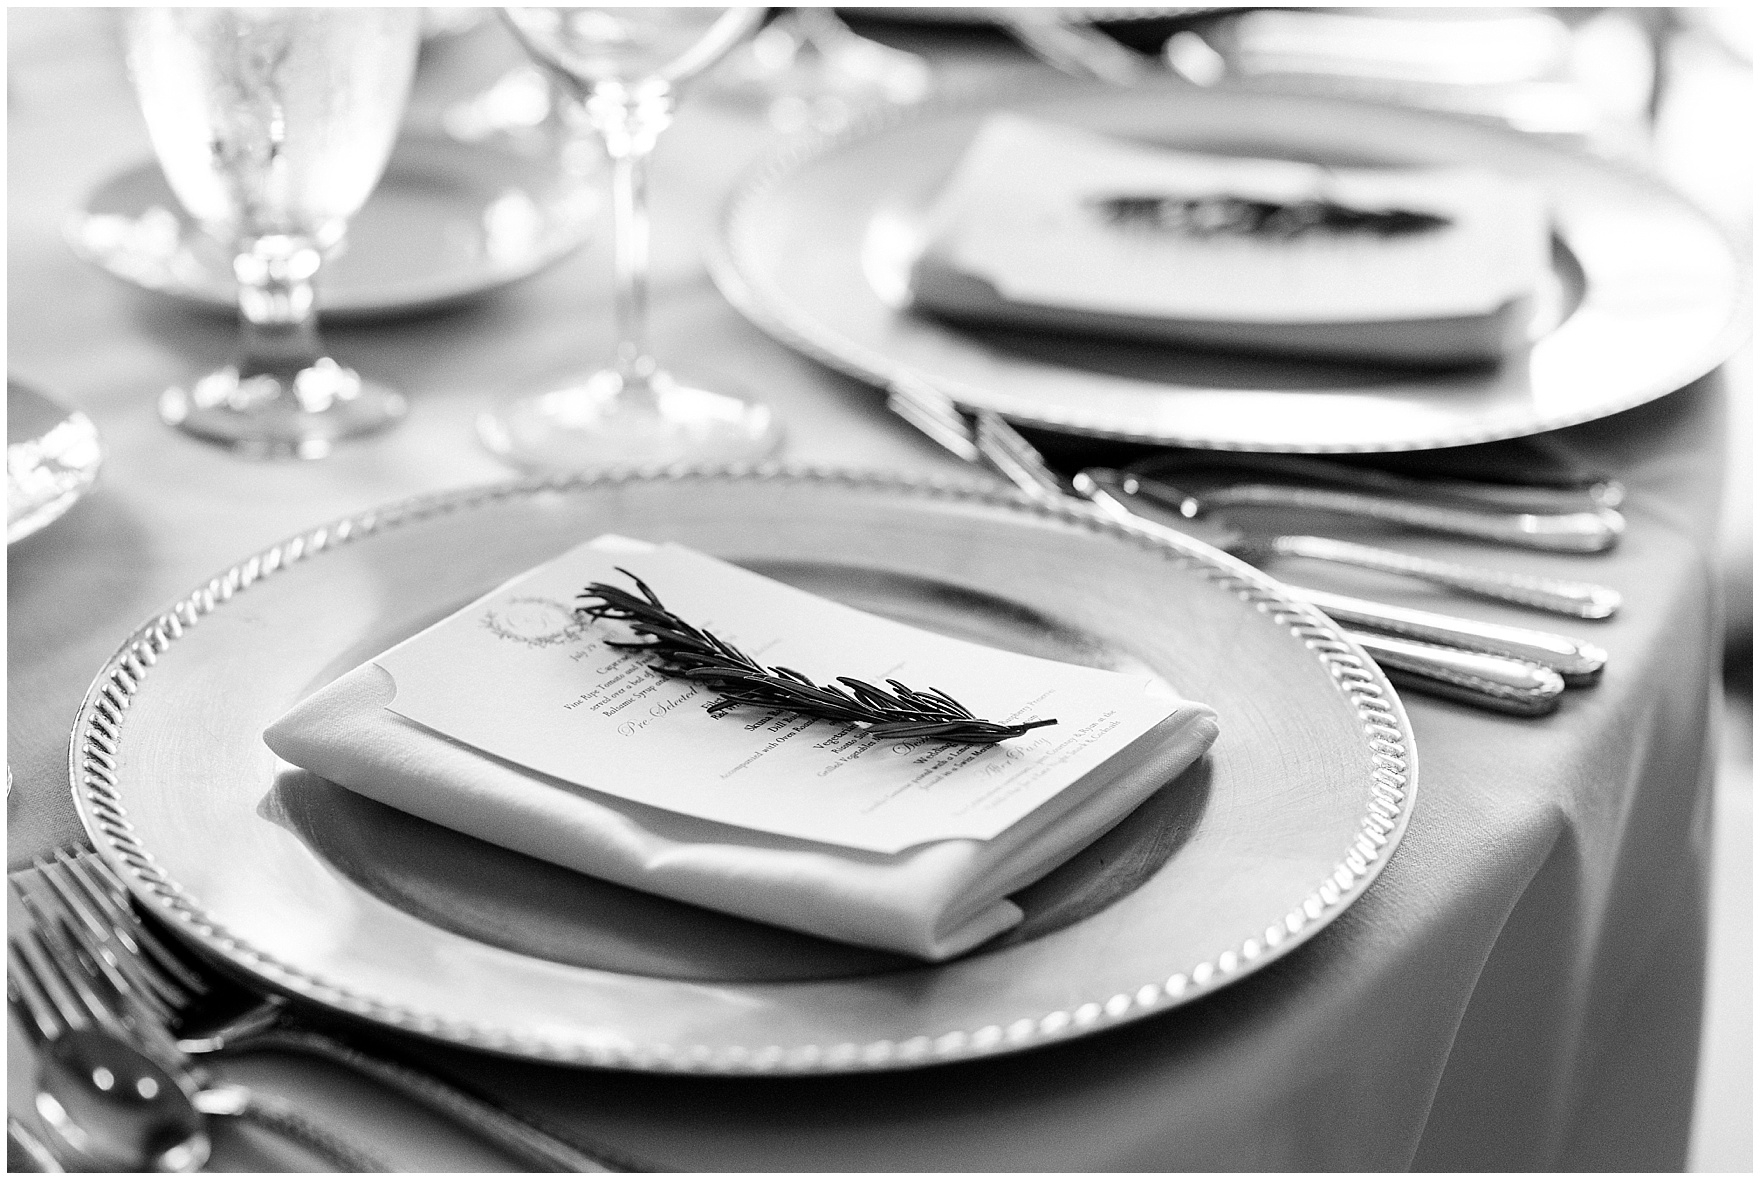 Menus are adorned with sprigs of rosemary during a Butterfield Country Club wedding.